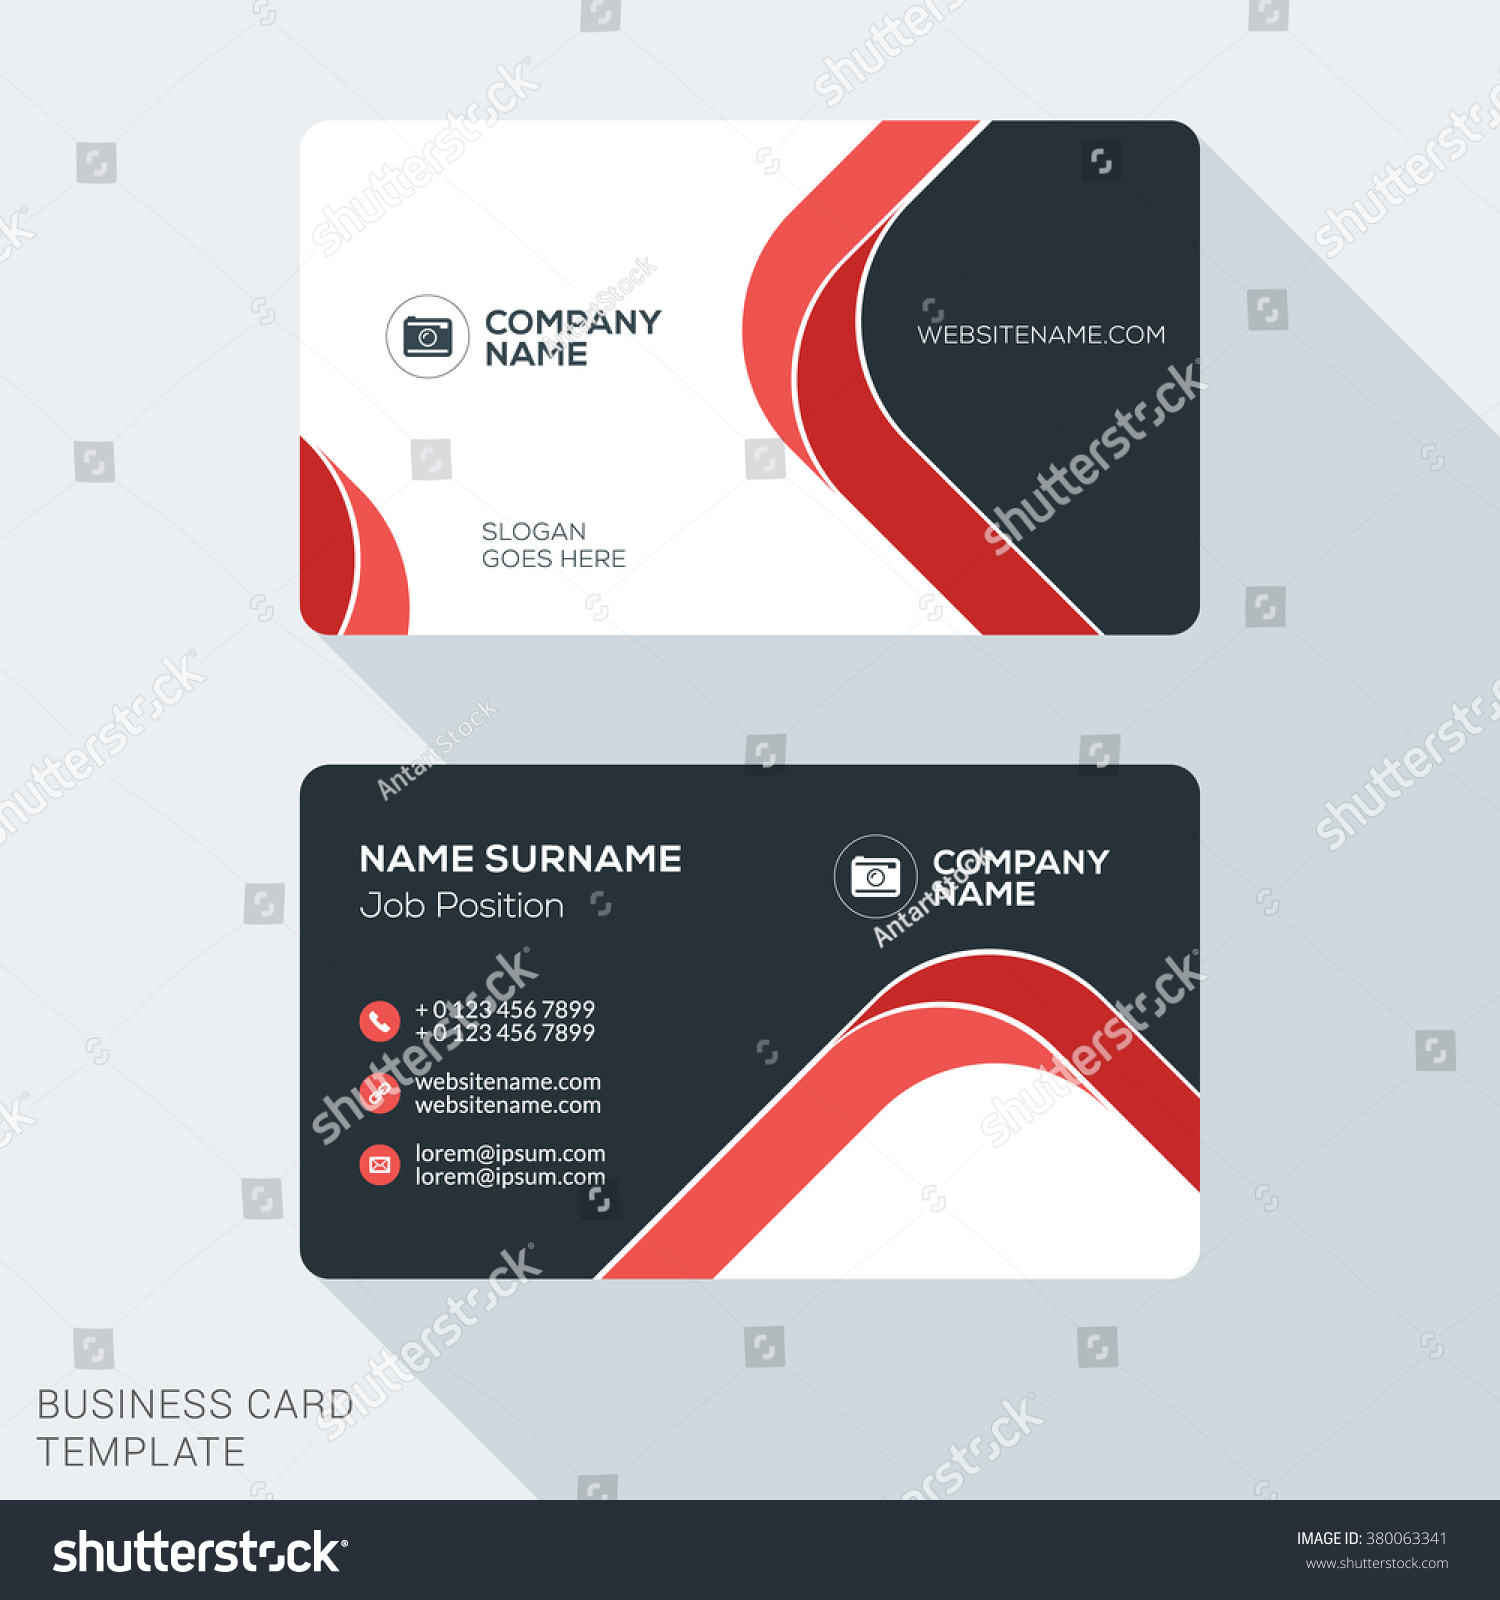 creative clean business card template flat のベクター画像素材